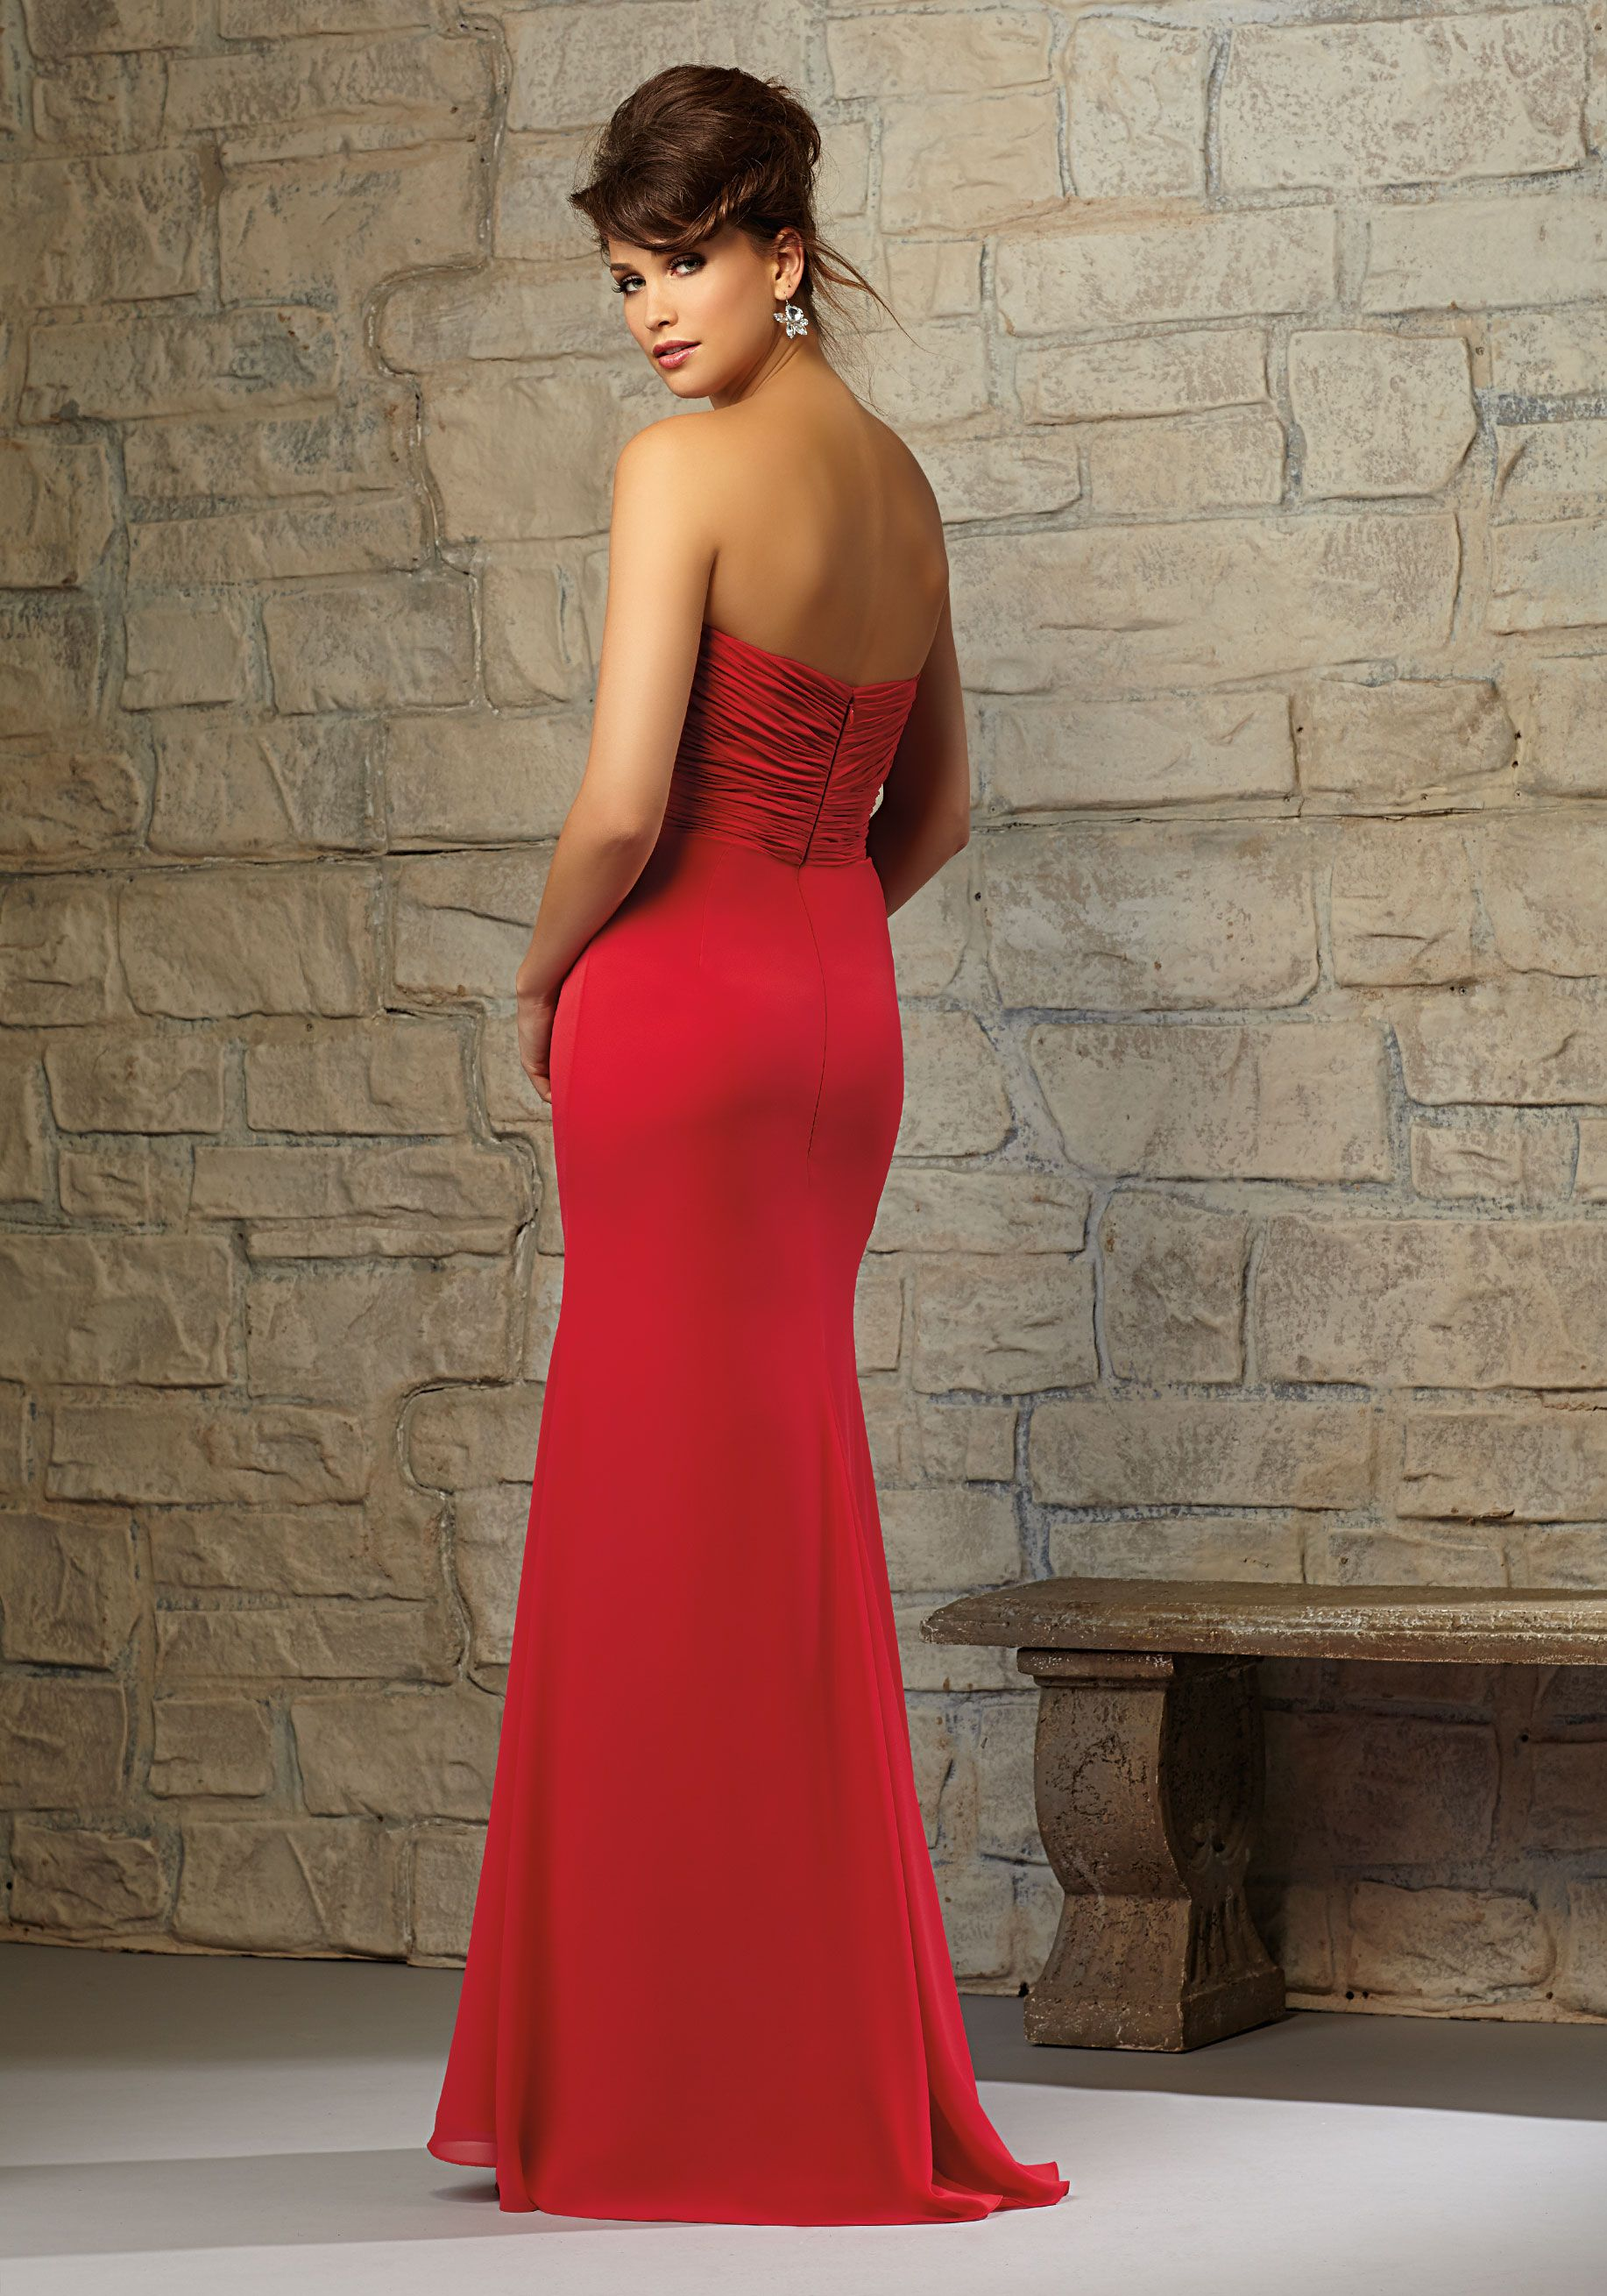 Elegant chiffon bridesmaid dress with matching tie designed by